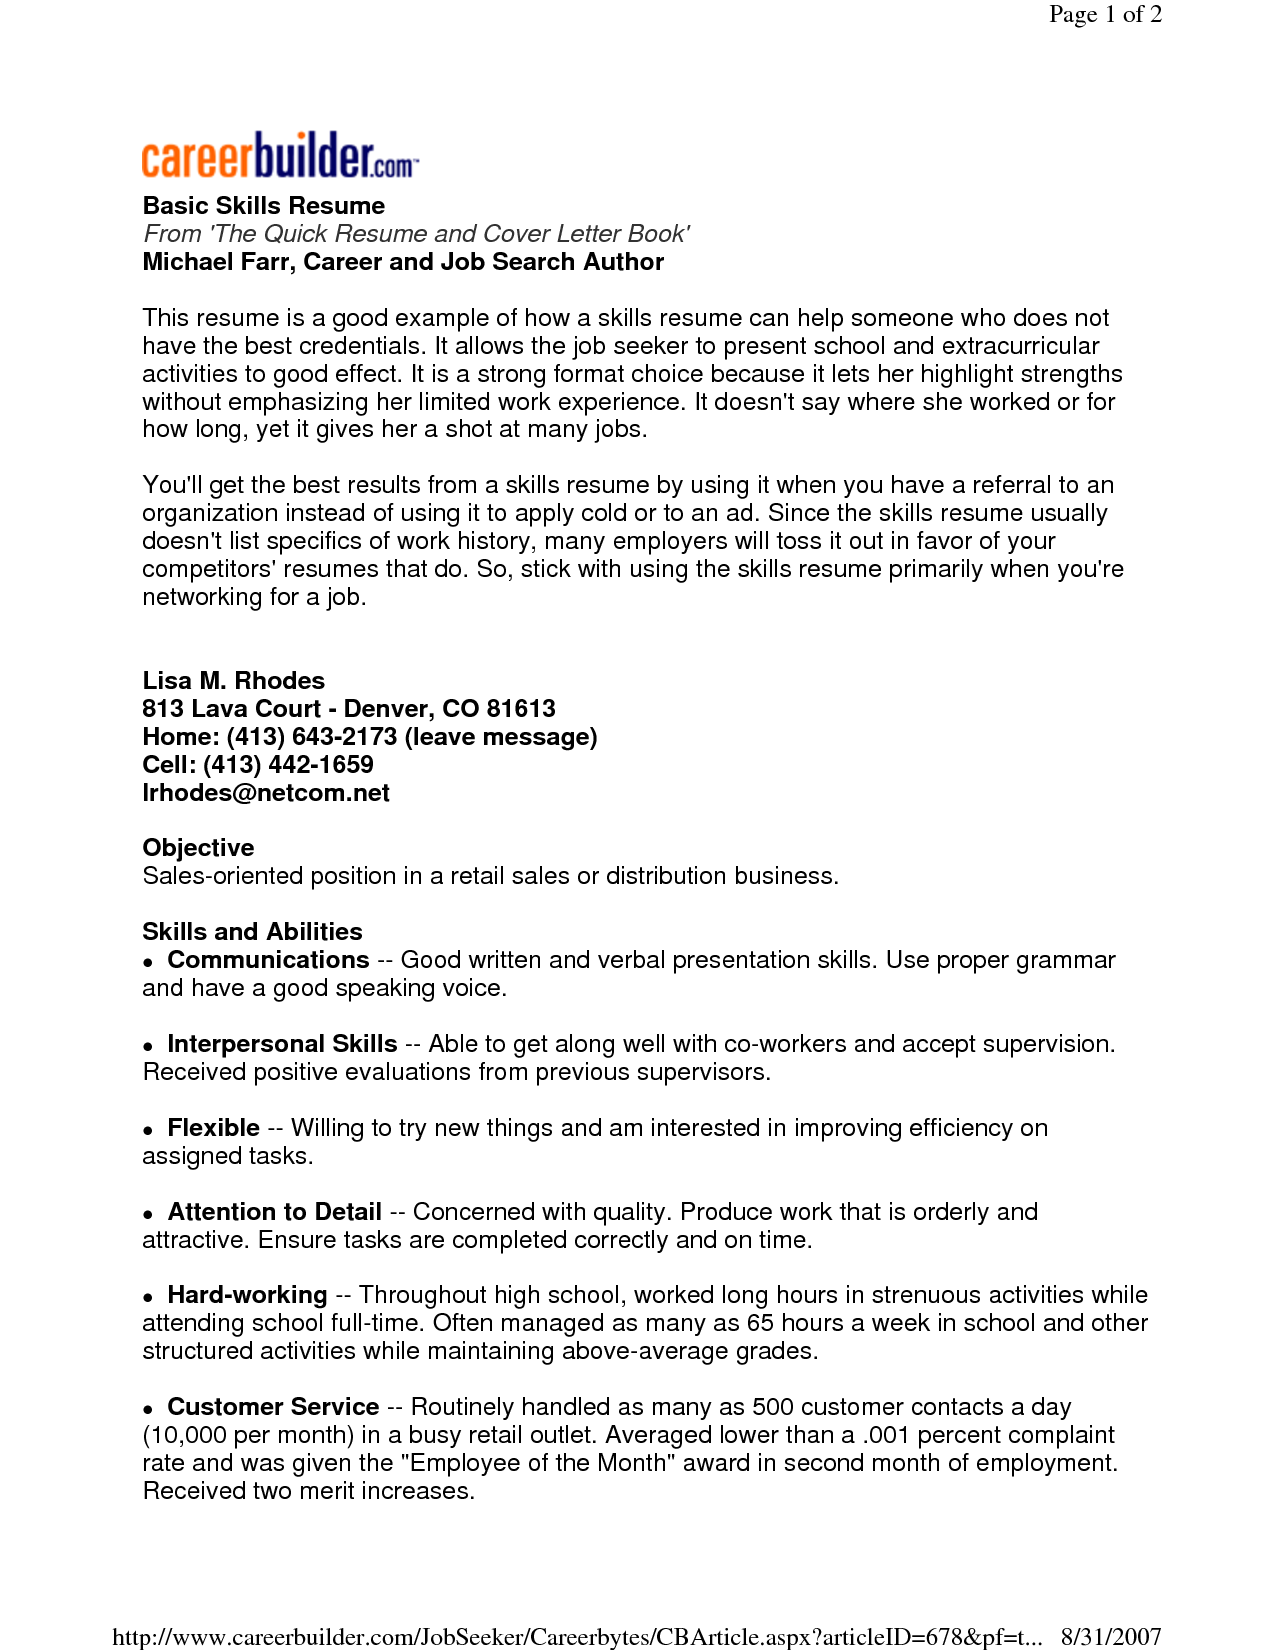 find here the sample resume that best fits your profile in order find here the sample resume that best fits your profile in order to get ahead the